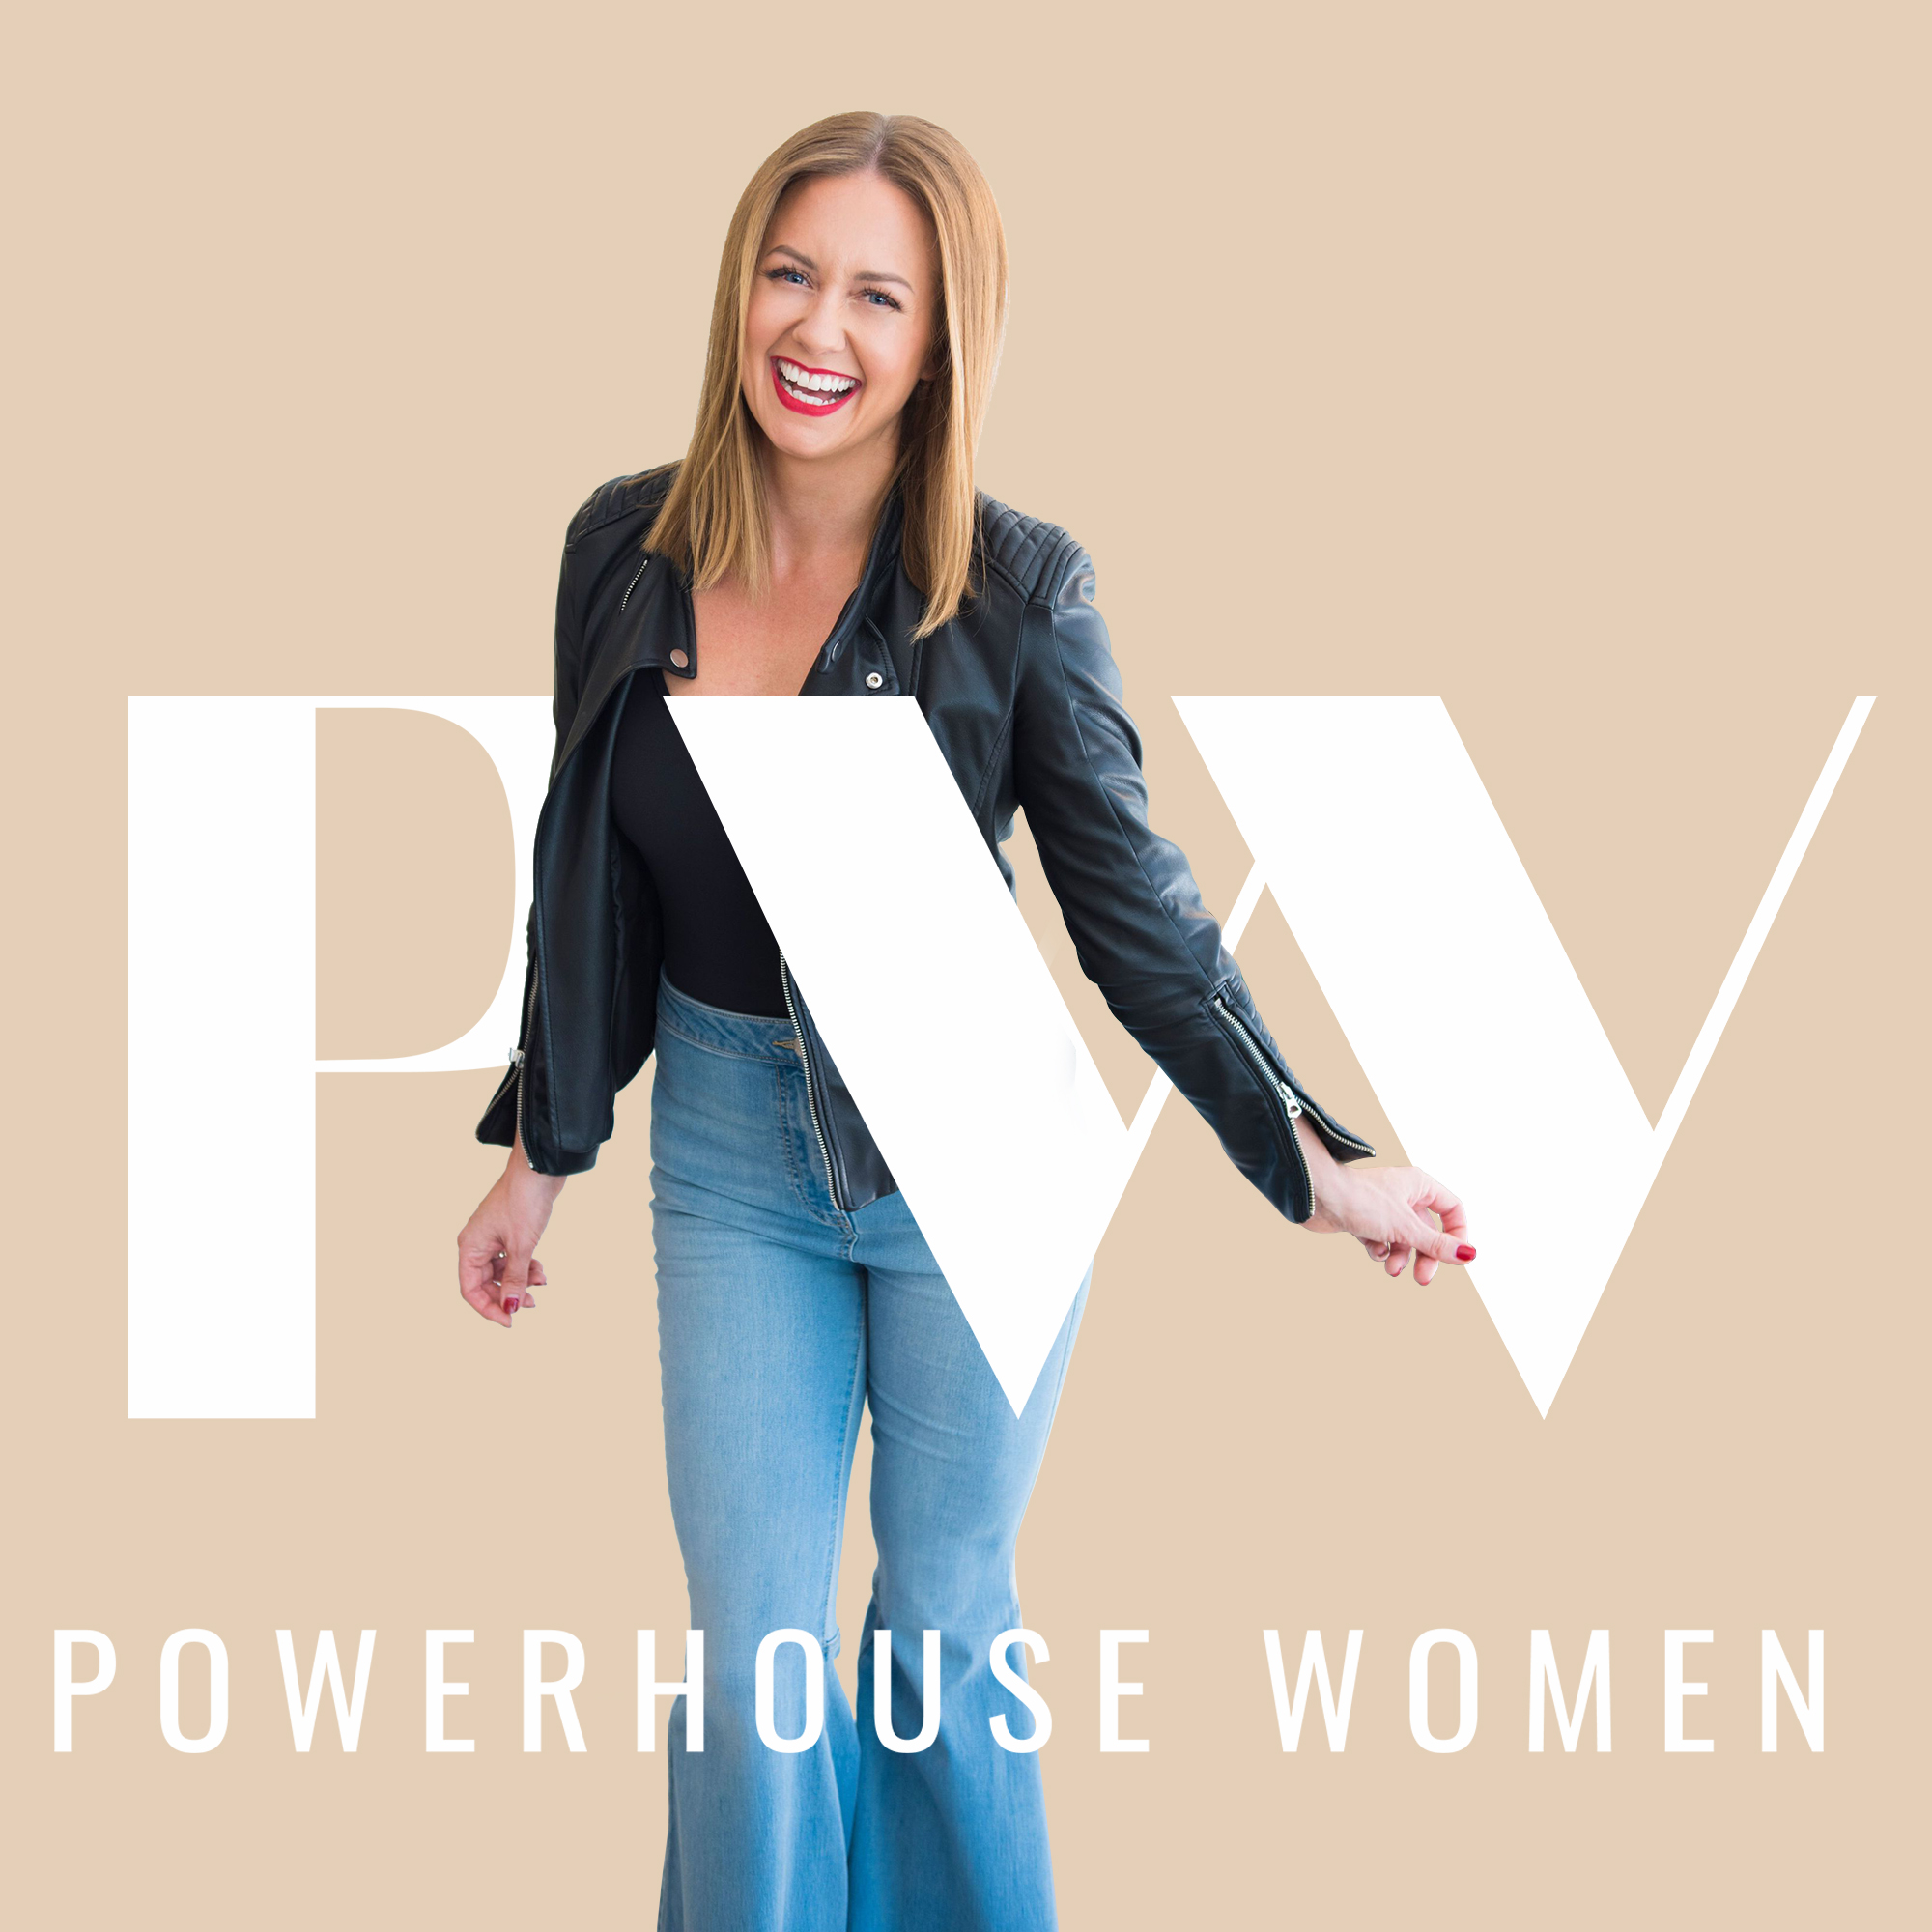 226: The key to getting unstuck and reclaiming your power with Ashley Lemieux